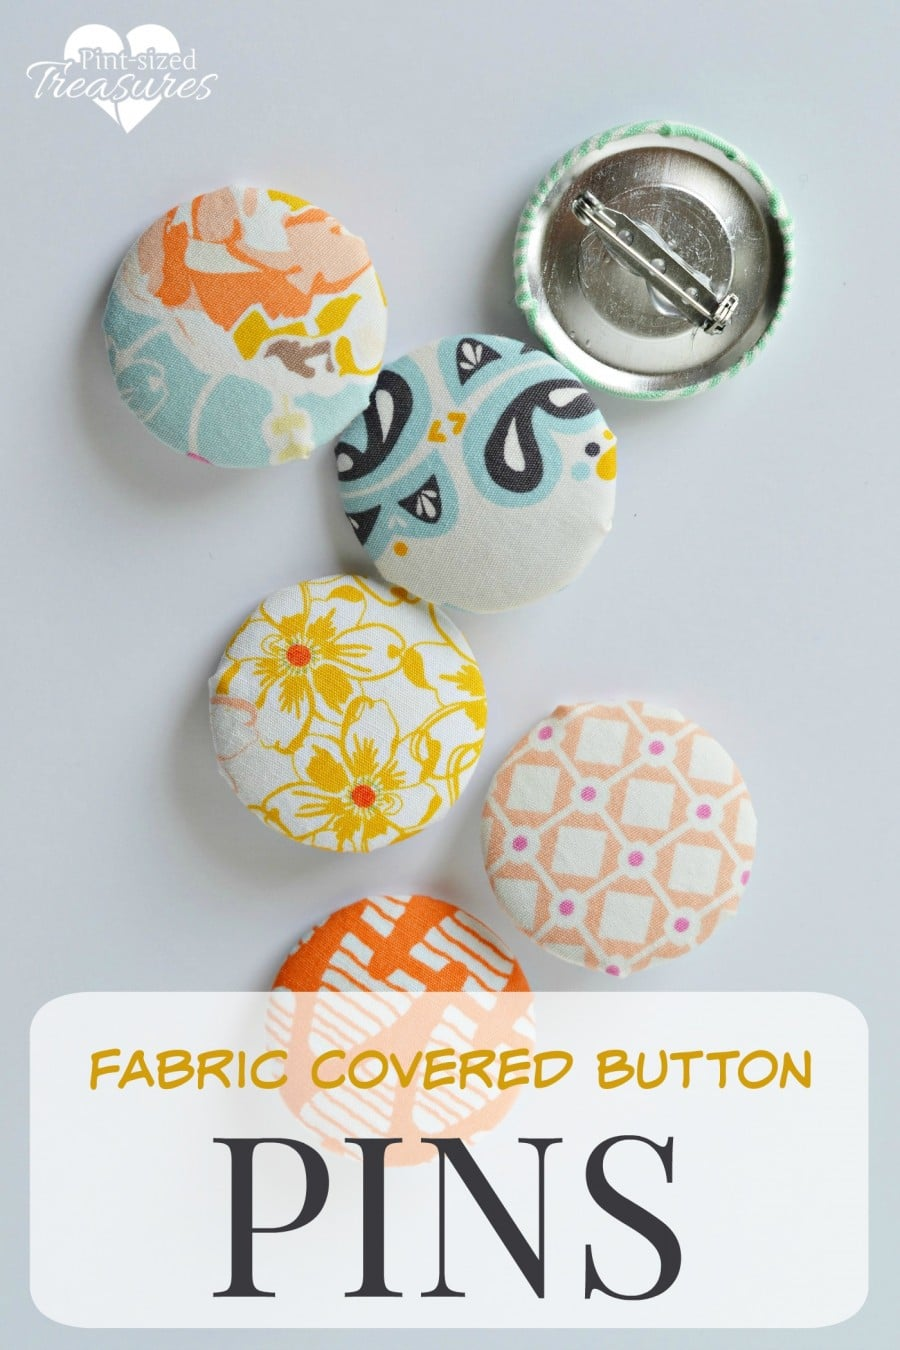 Fabric Pins : fabric, Fabric, Covered, Button, Pint-sized, Treasures